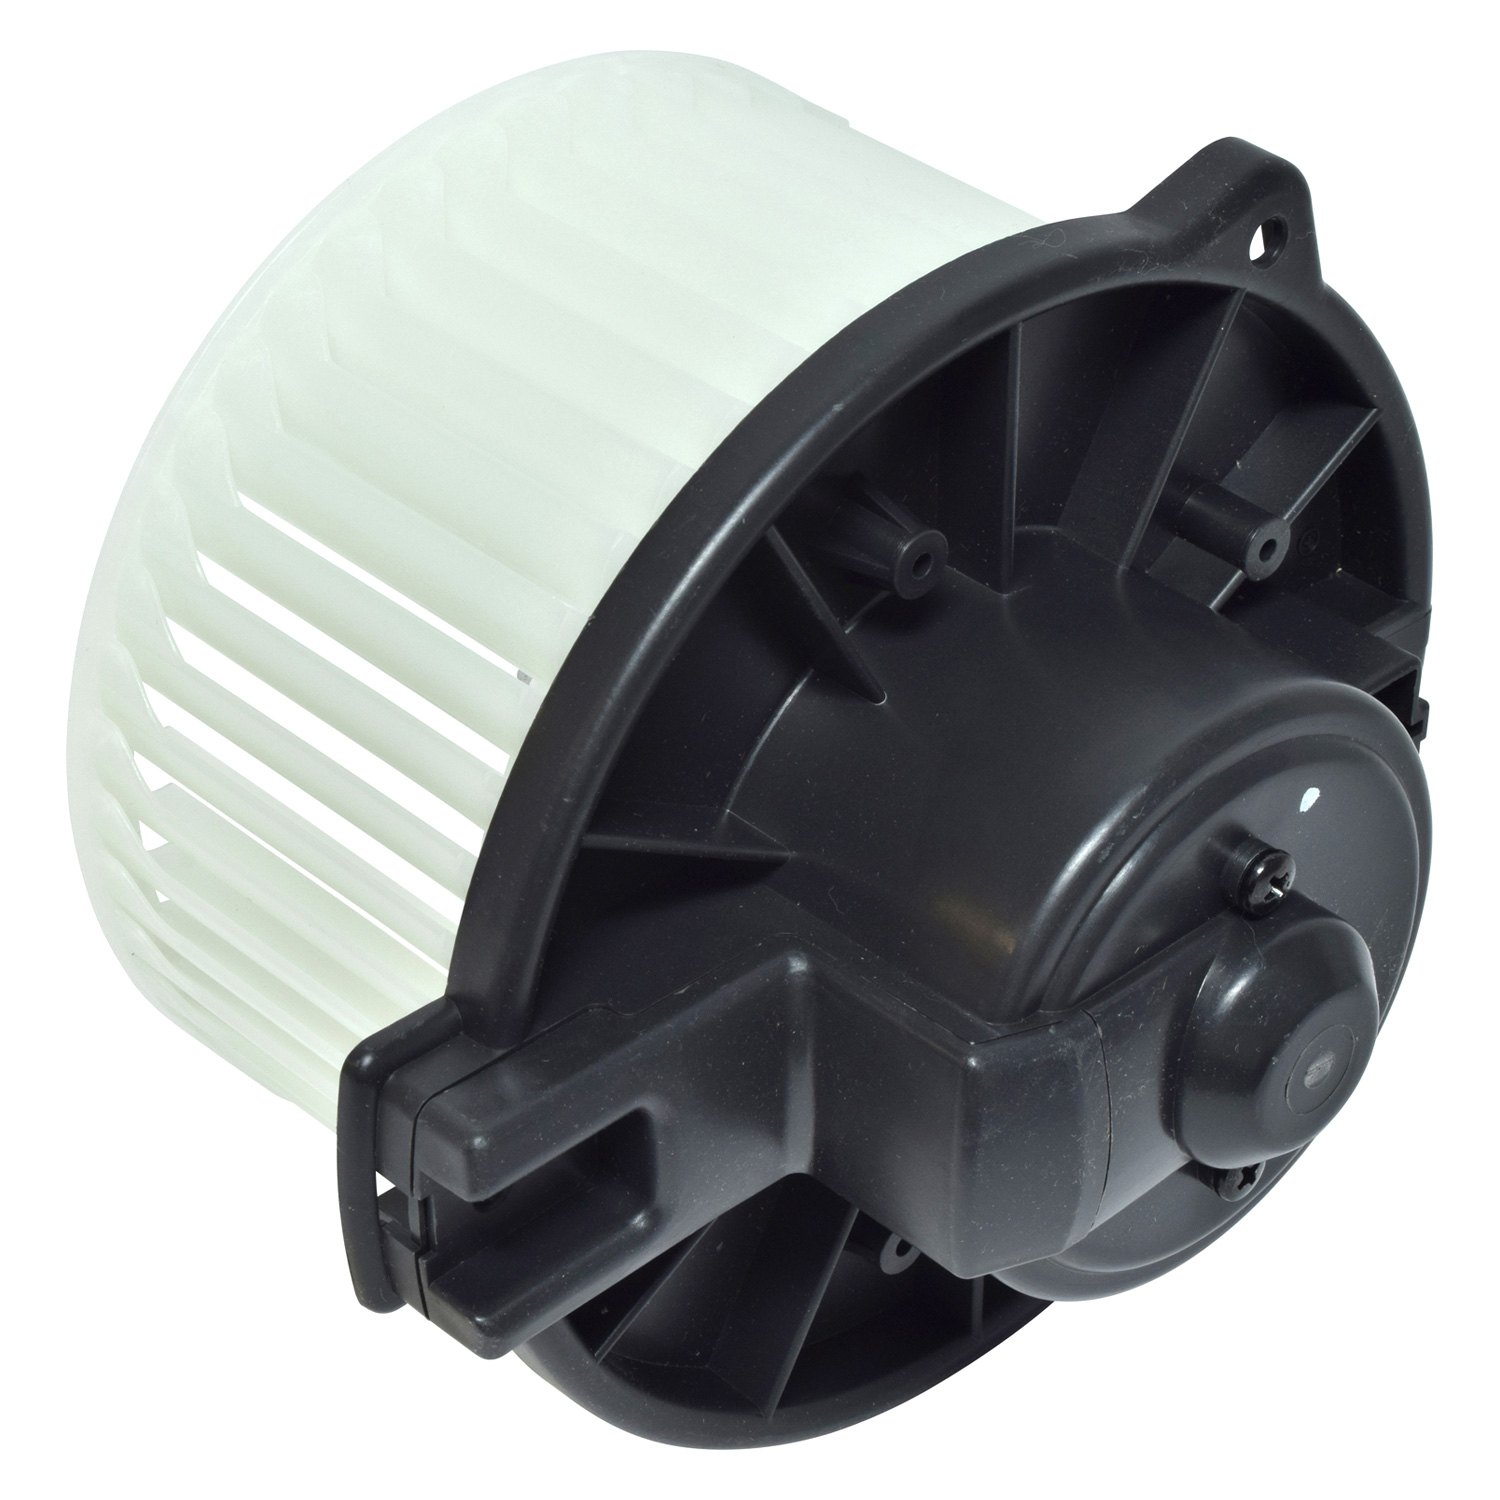 Universal Air Conditioner Bm3929 Front Blower Motor